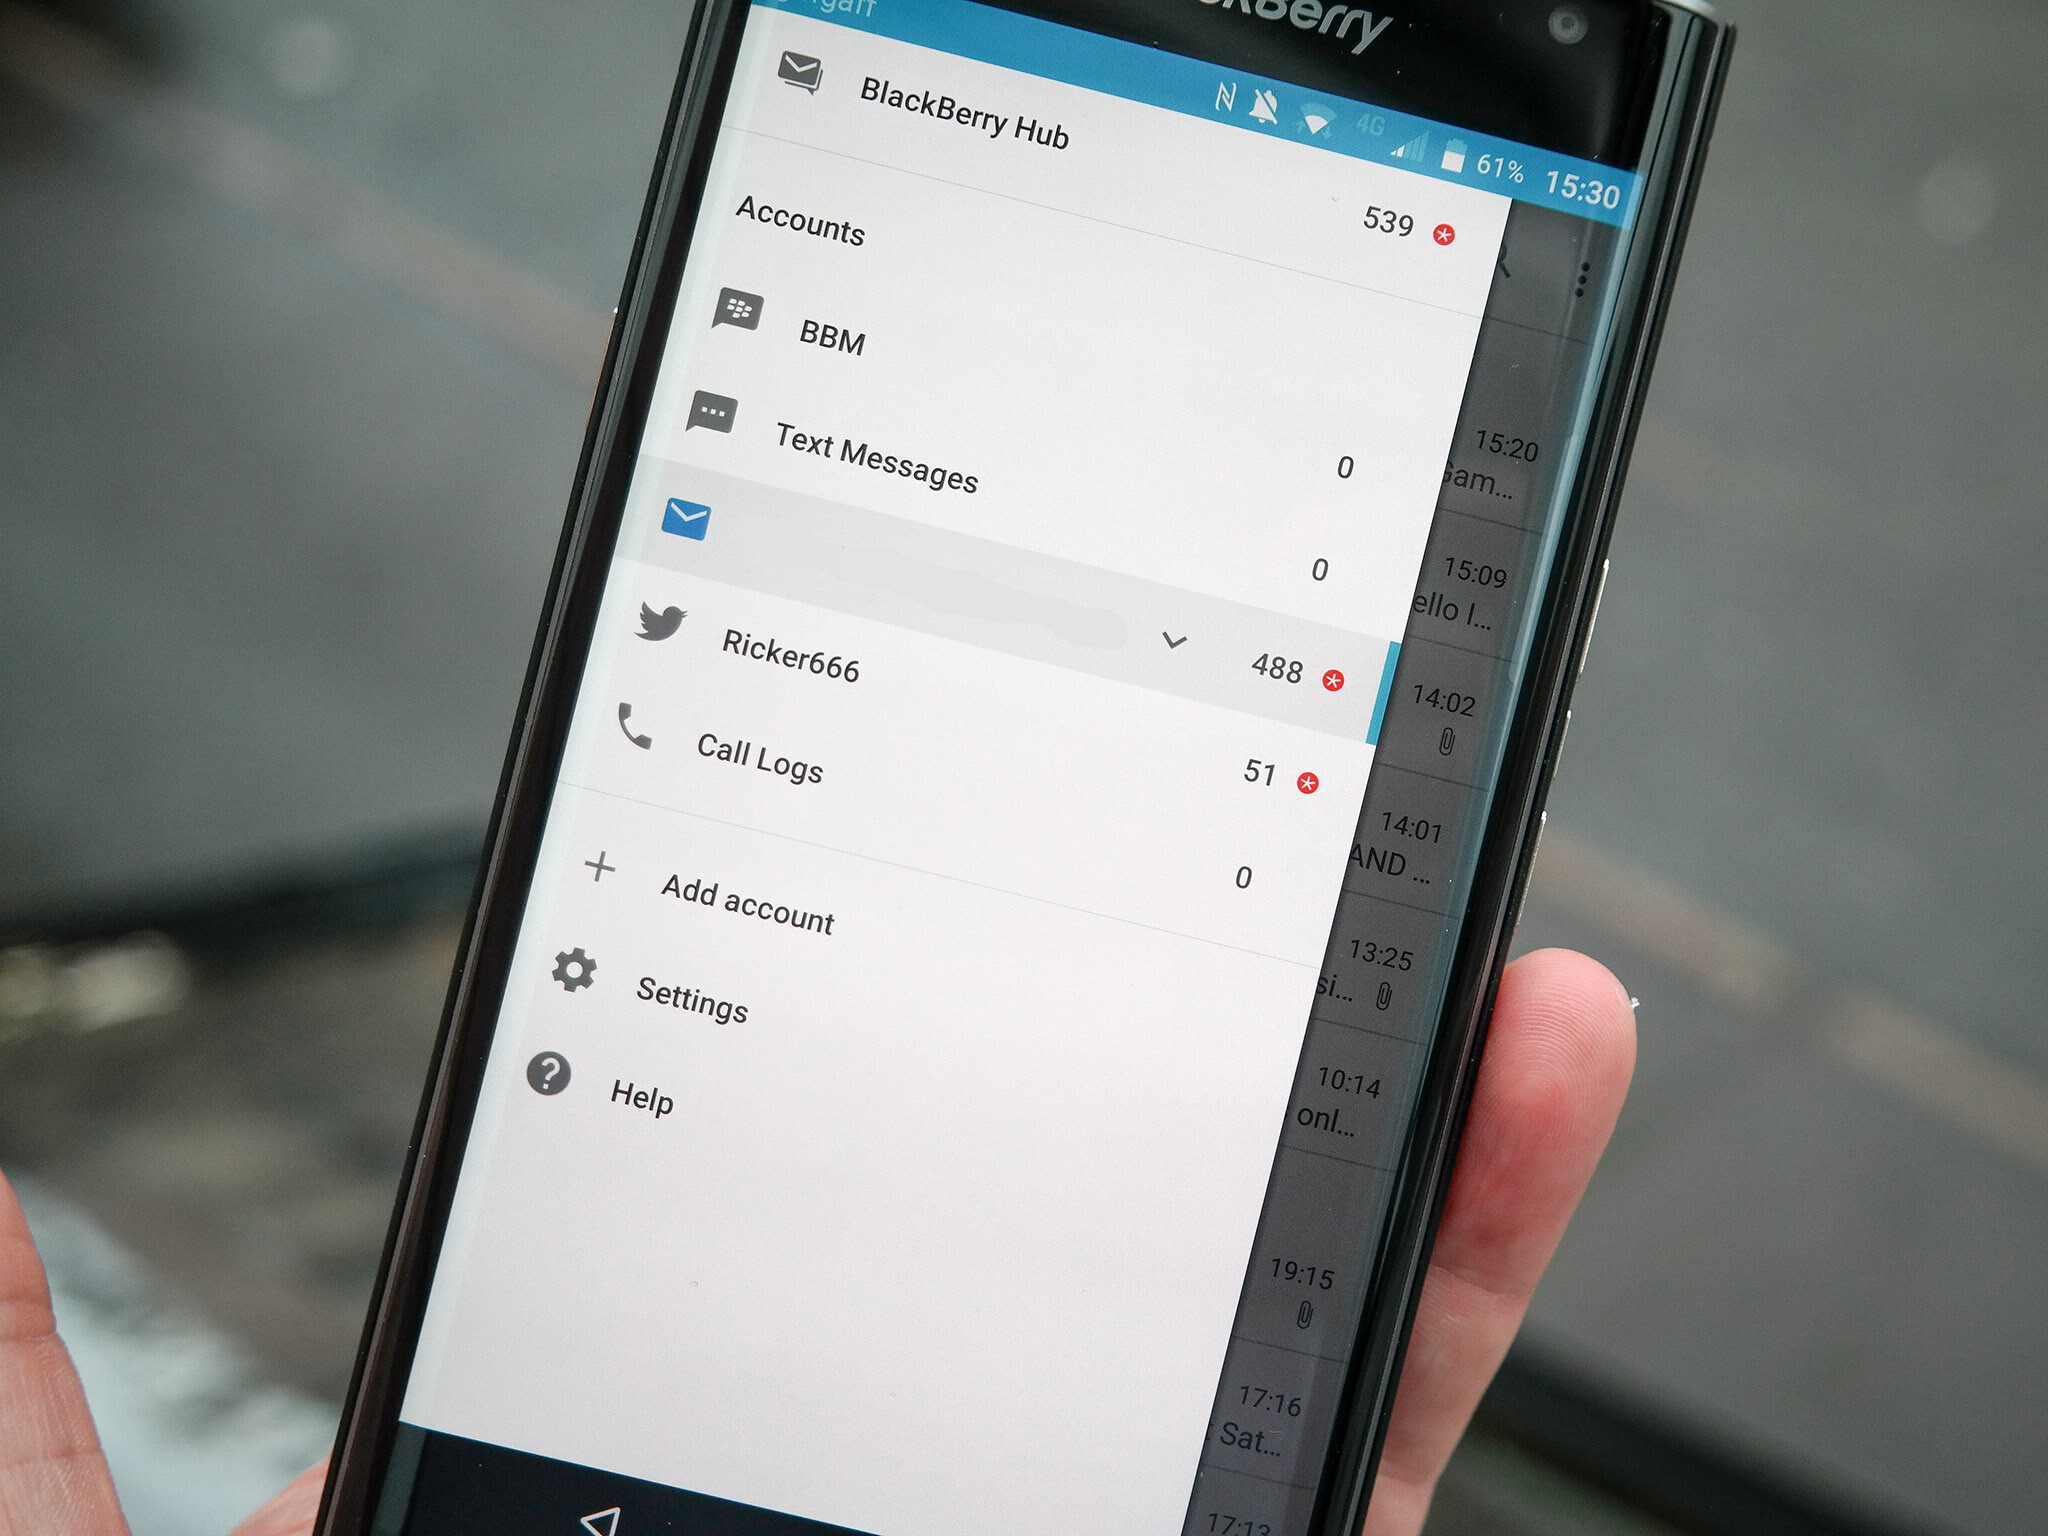 BlackBerry Priv top tip: Turn off Gmail sync if you're using